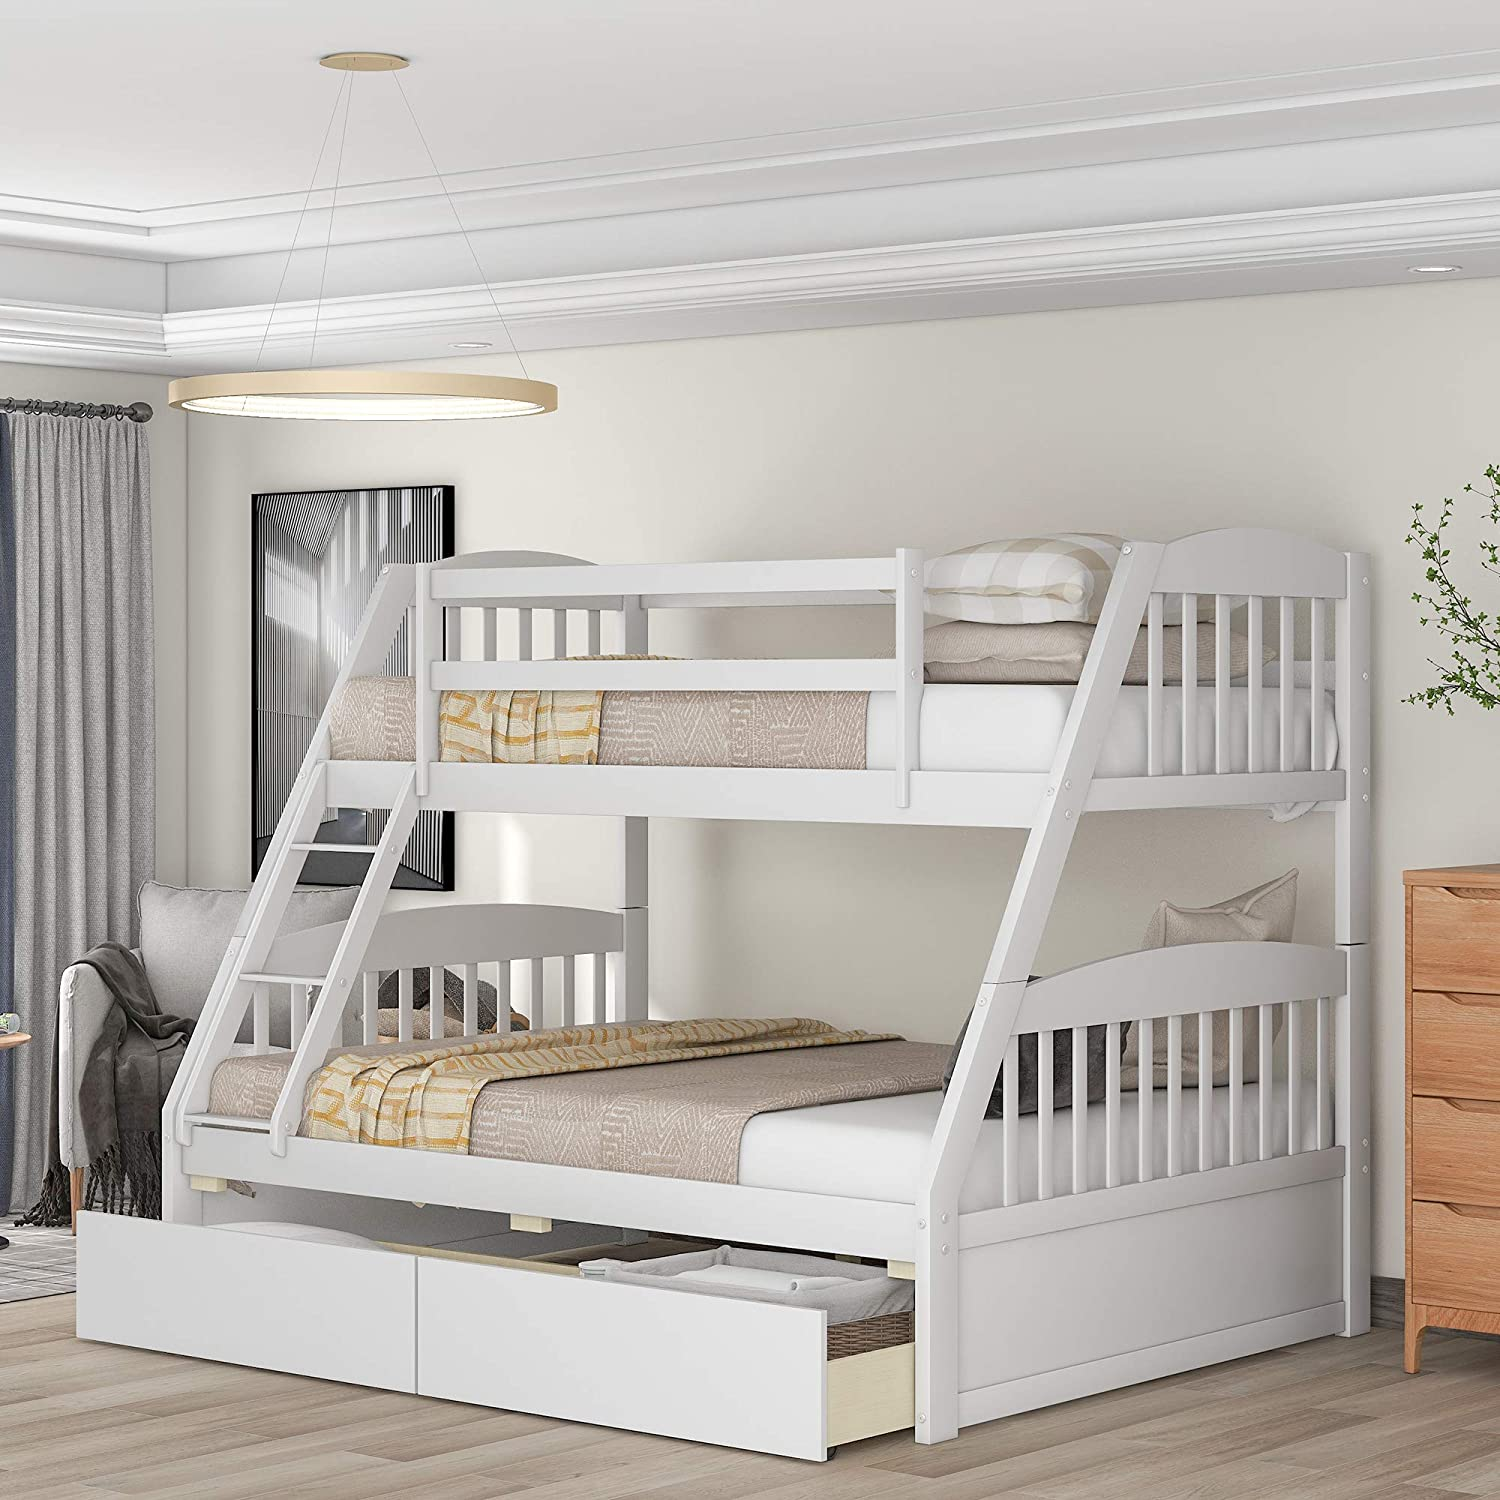 Buy Solid Wood Twin Over Full Bunk Beds With 2 Storage Drawers Danxee Bunk Beds For Kids With Ladder And Guard Rail White Online In Turkey B0872q8bkm